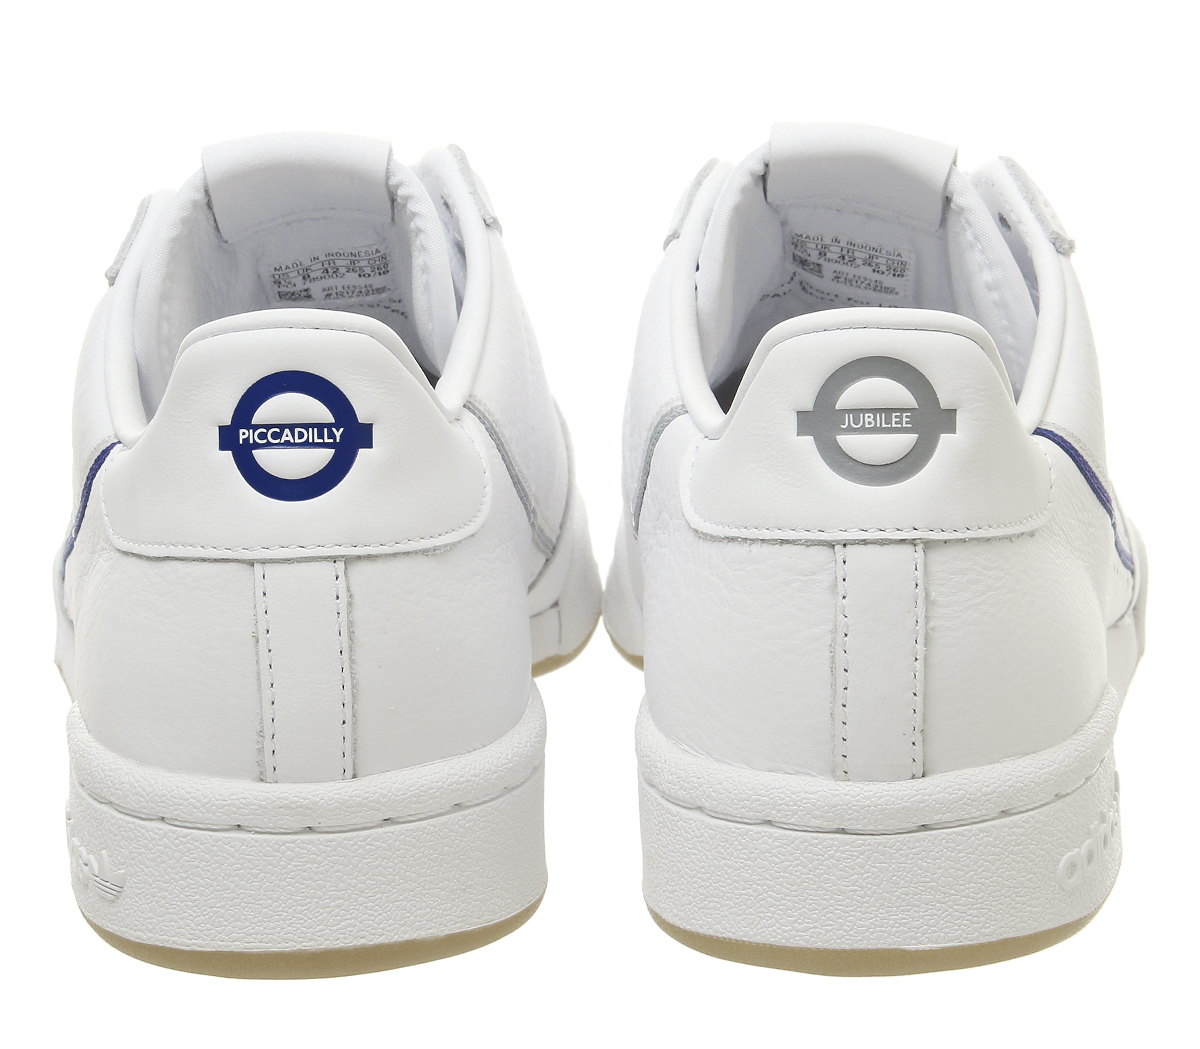 reputable site 3aeba bb726 Sentinel Adidas Continental 80S Trainers White Grey One Navy Gum Tfl  Trainers Shoes